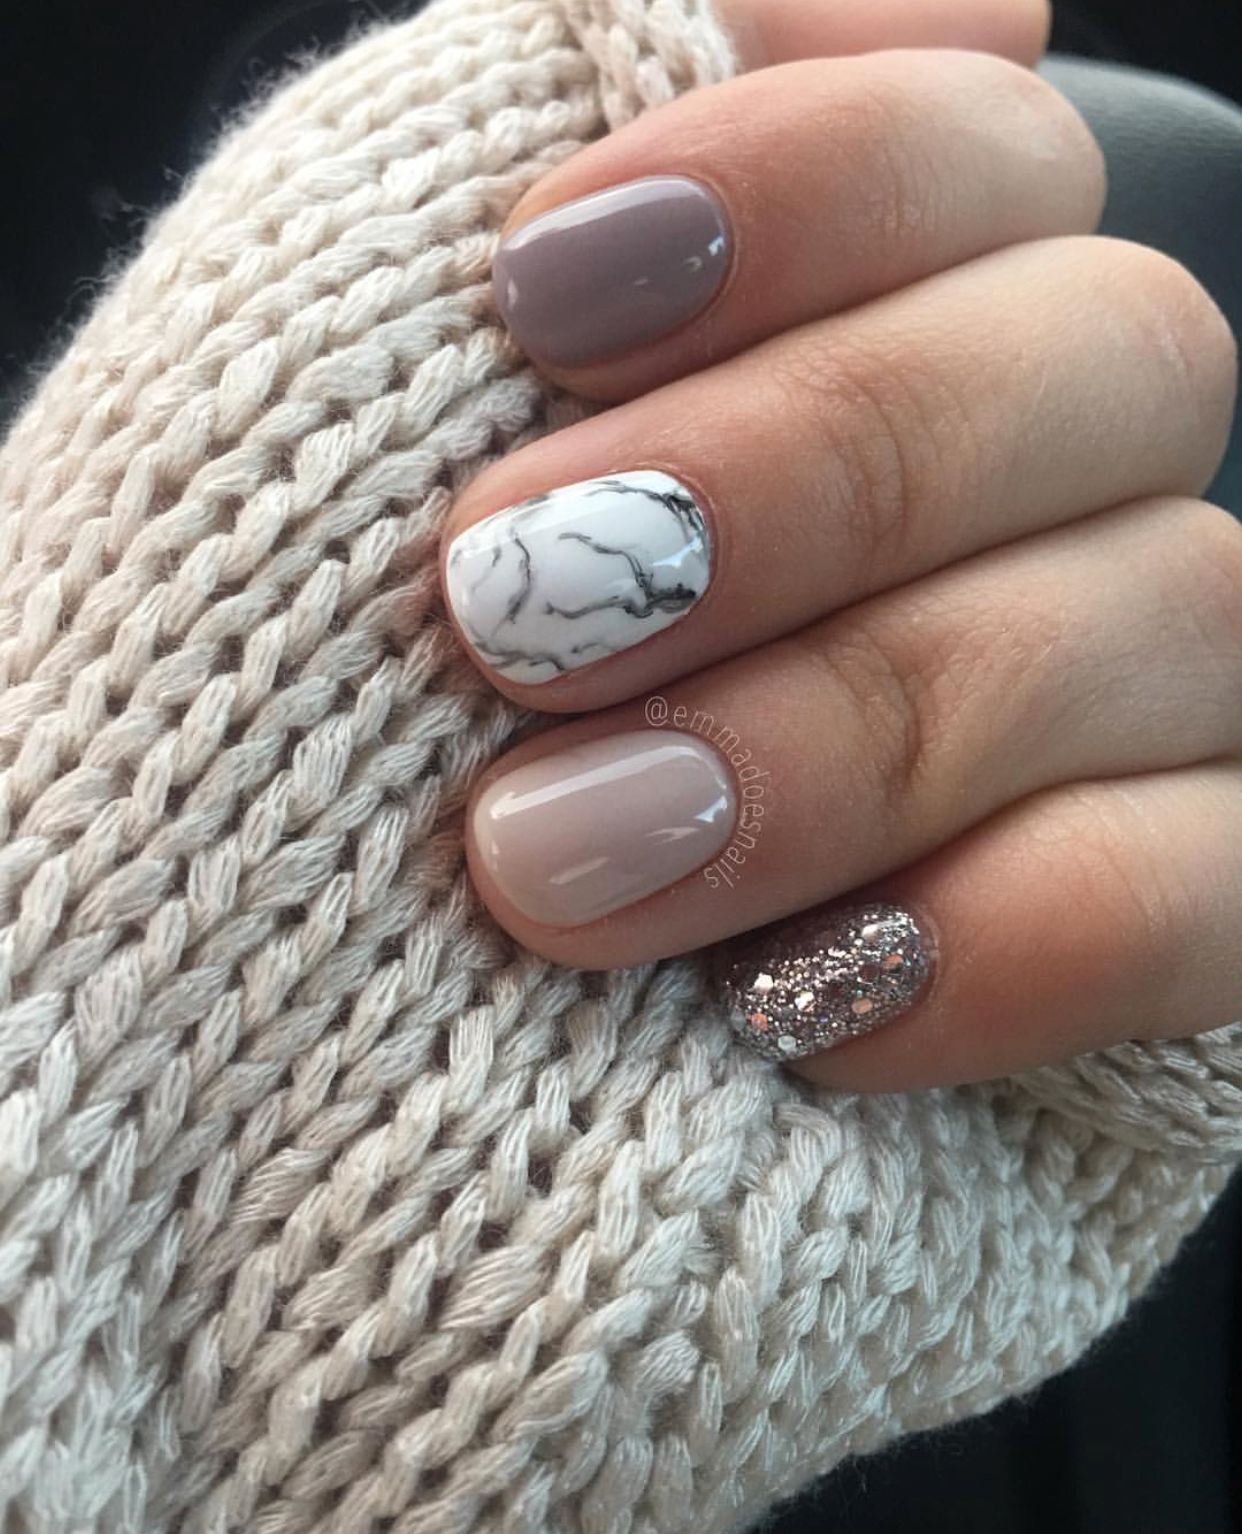 Gel, gel polish, gel nails, short nails, nail art, nail design, nails,  winter nails, marble nails, neutral nails, holiday nails, Emma does nails - Gel, Gel Polish, Gel Nails, Short Nails, Nail Art, Nail Design